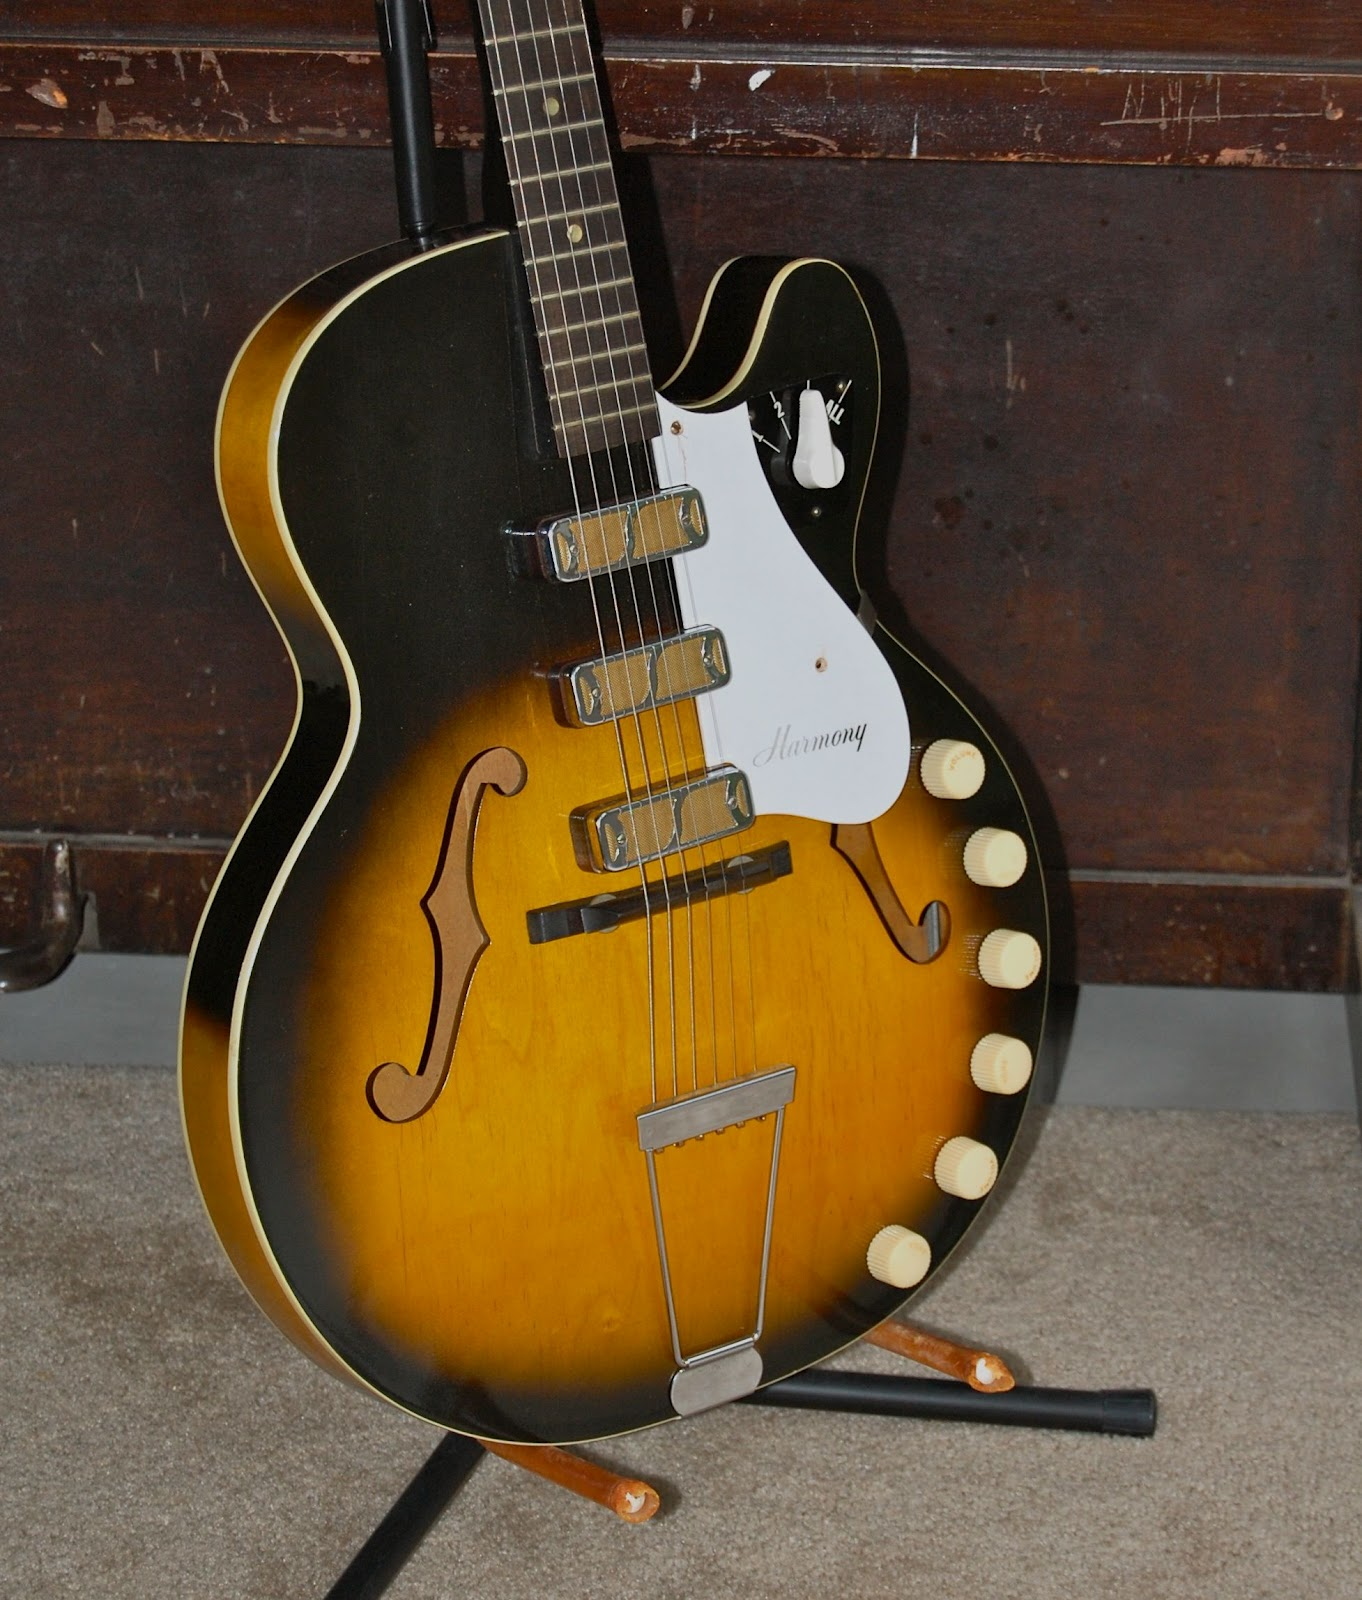 Galasso Guitars 1963 Harmony Rocket H59 with 3 Rowe Industries